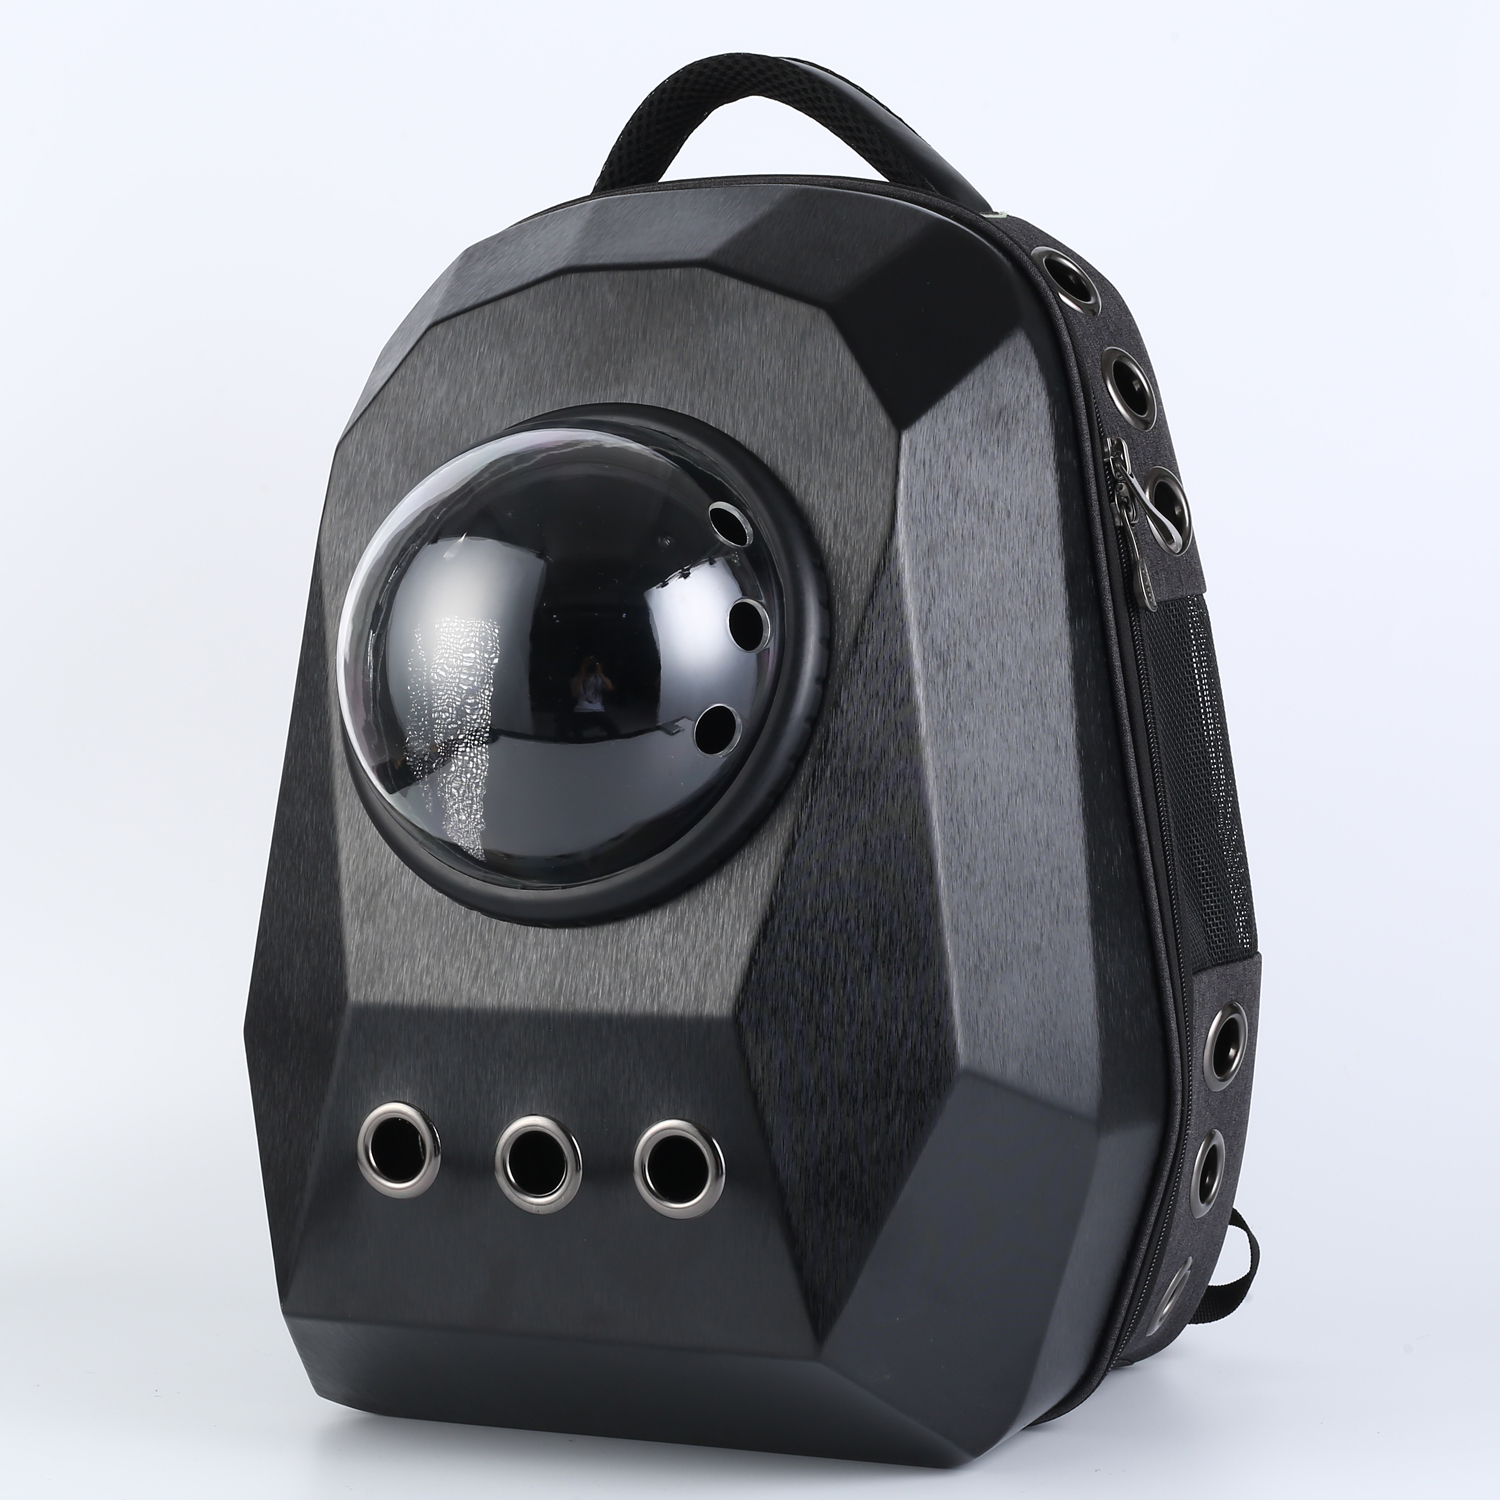 b9aa68622a DREAMSOULE Space Capsule Pet Carrier Backpack Waterproof Handbag Backpack  Diamond Shaped Space Cabin Travel Cat Dog Carrier Bag-in Cat Beds   Mats  from Home ...